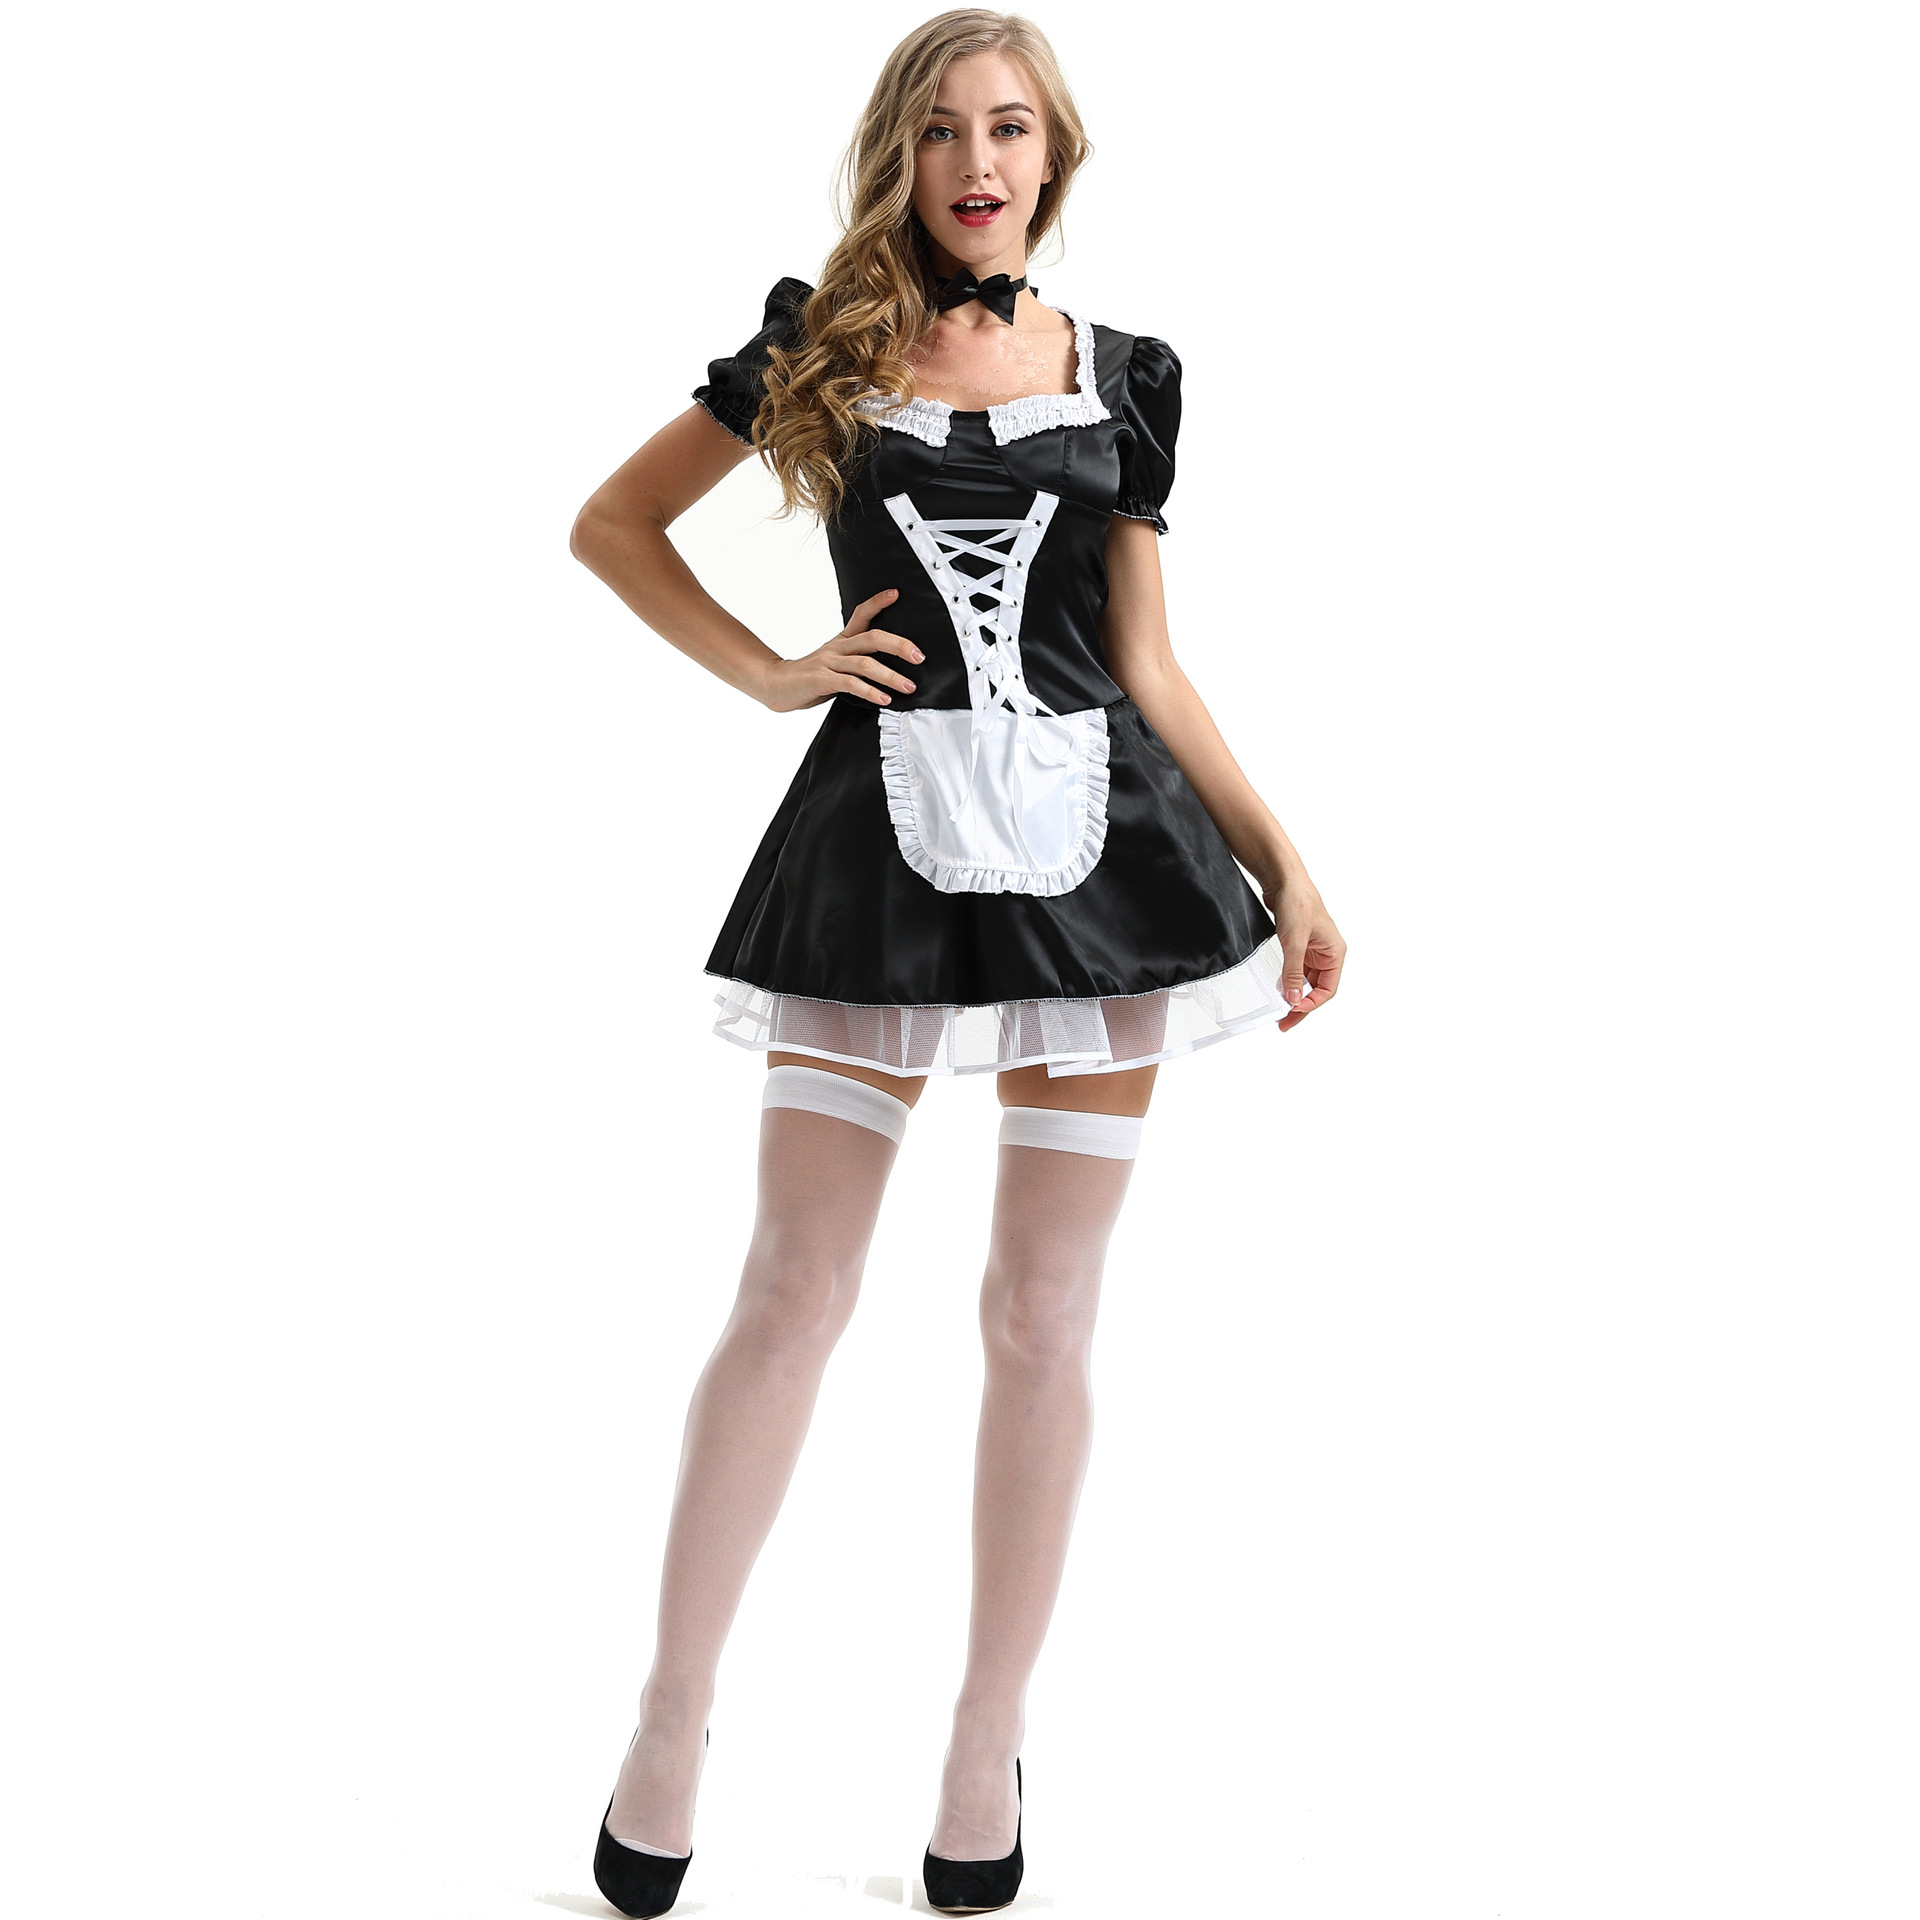 Hot sexy french maid costume fancy dress open cup party naughty outfit nightwear